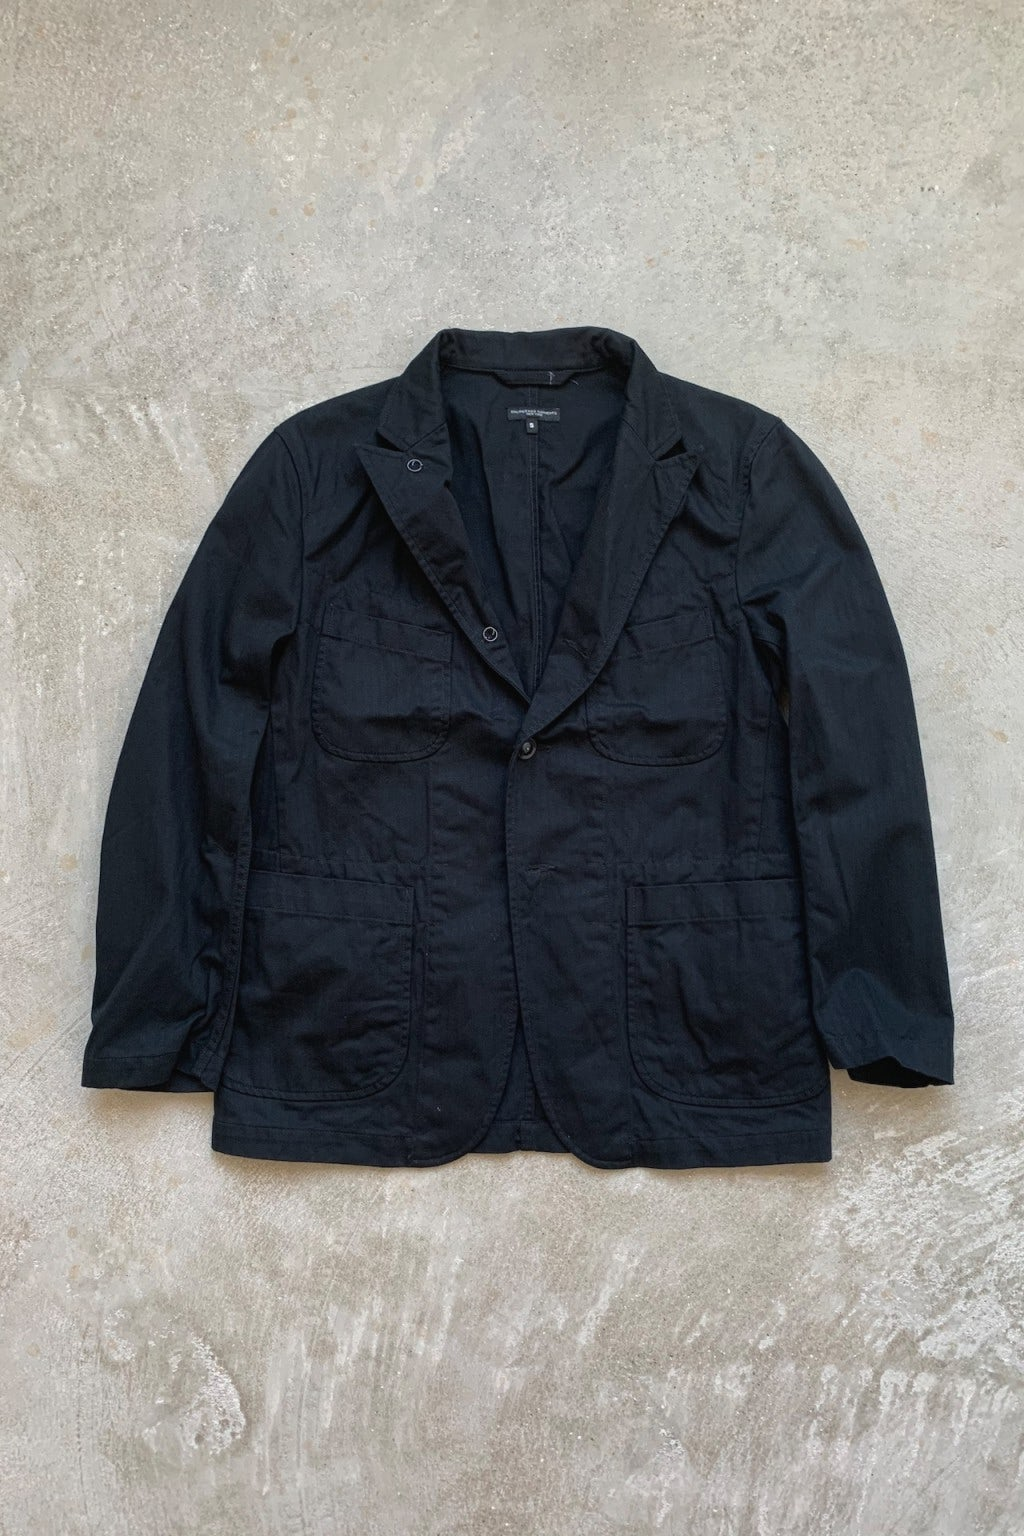 Engineered Garments Bedford Jacket  Black Cotton Herringbone Twill